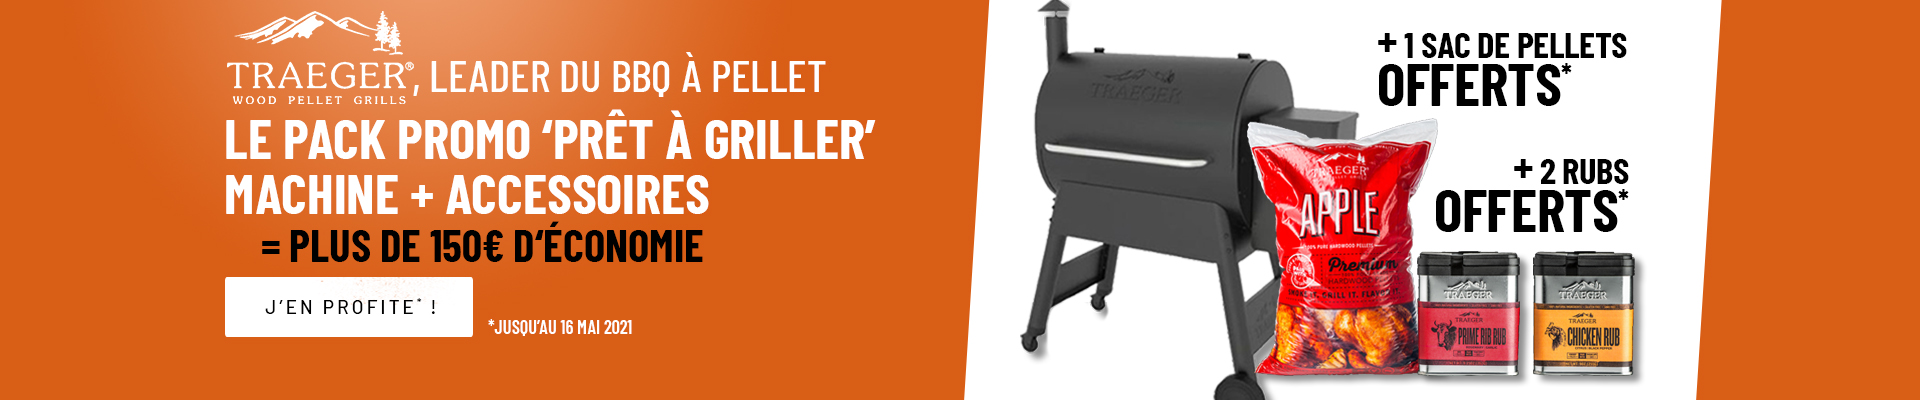 Offre traeger